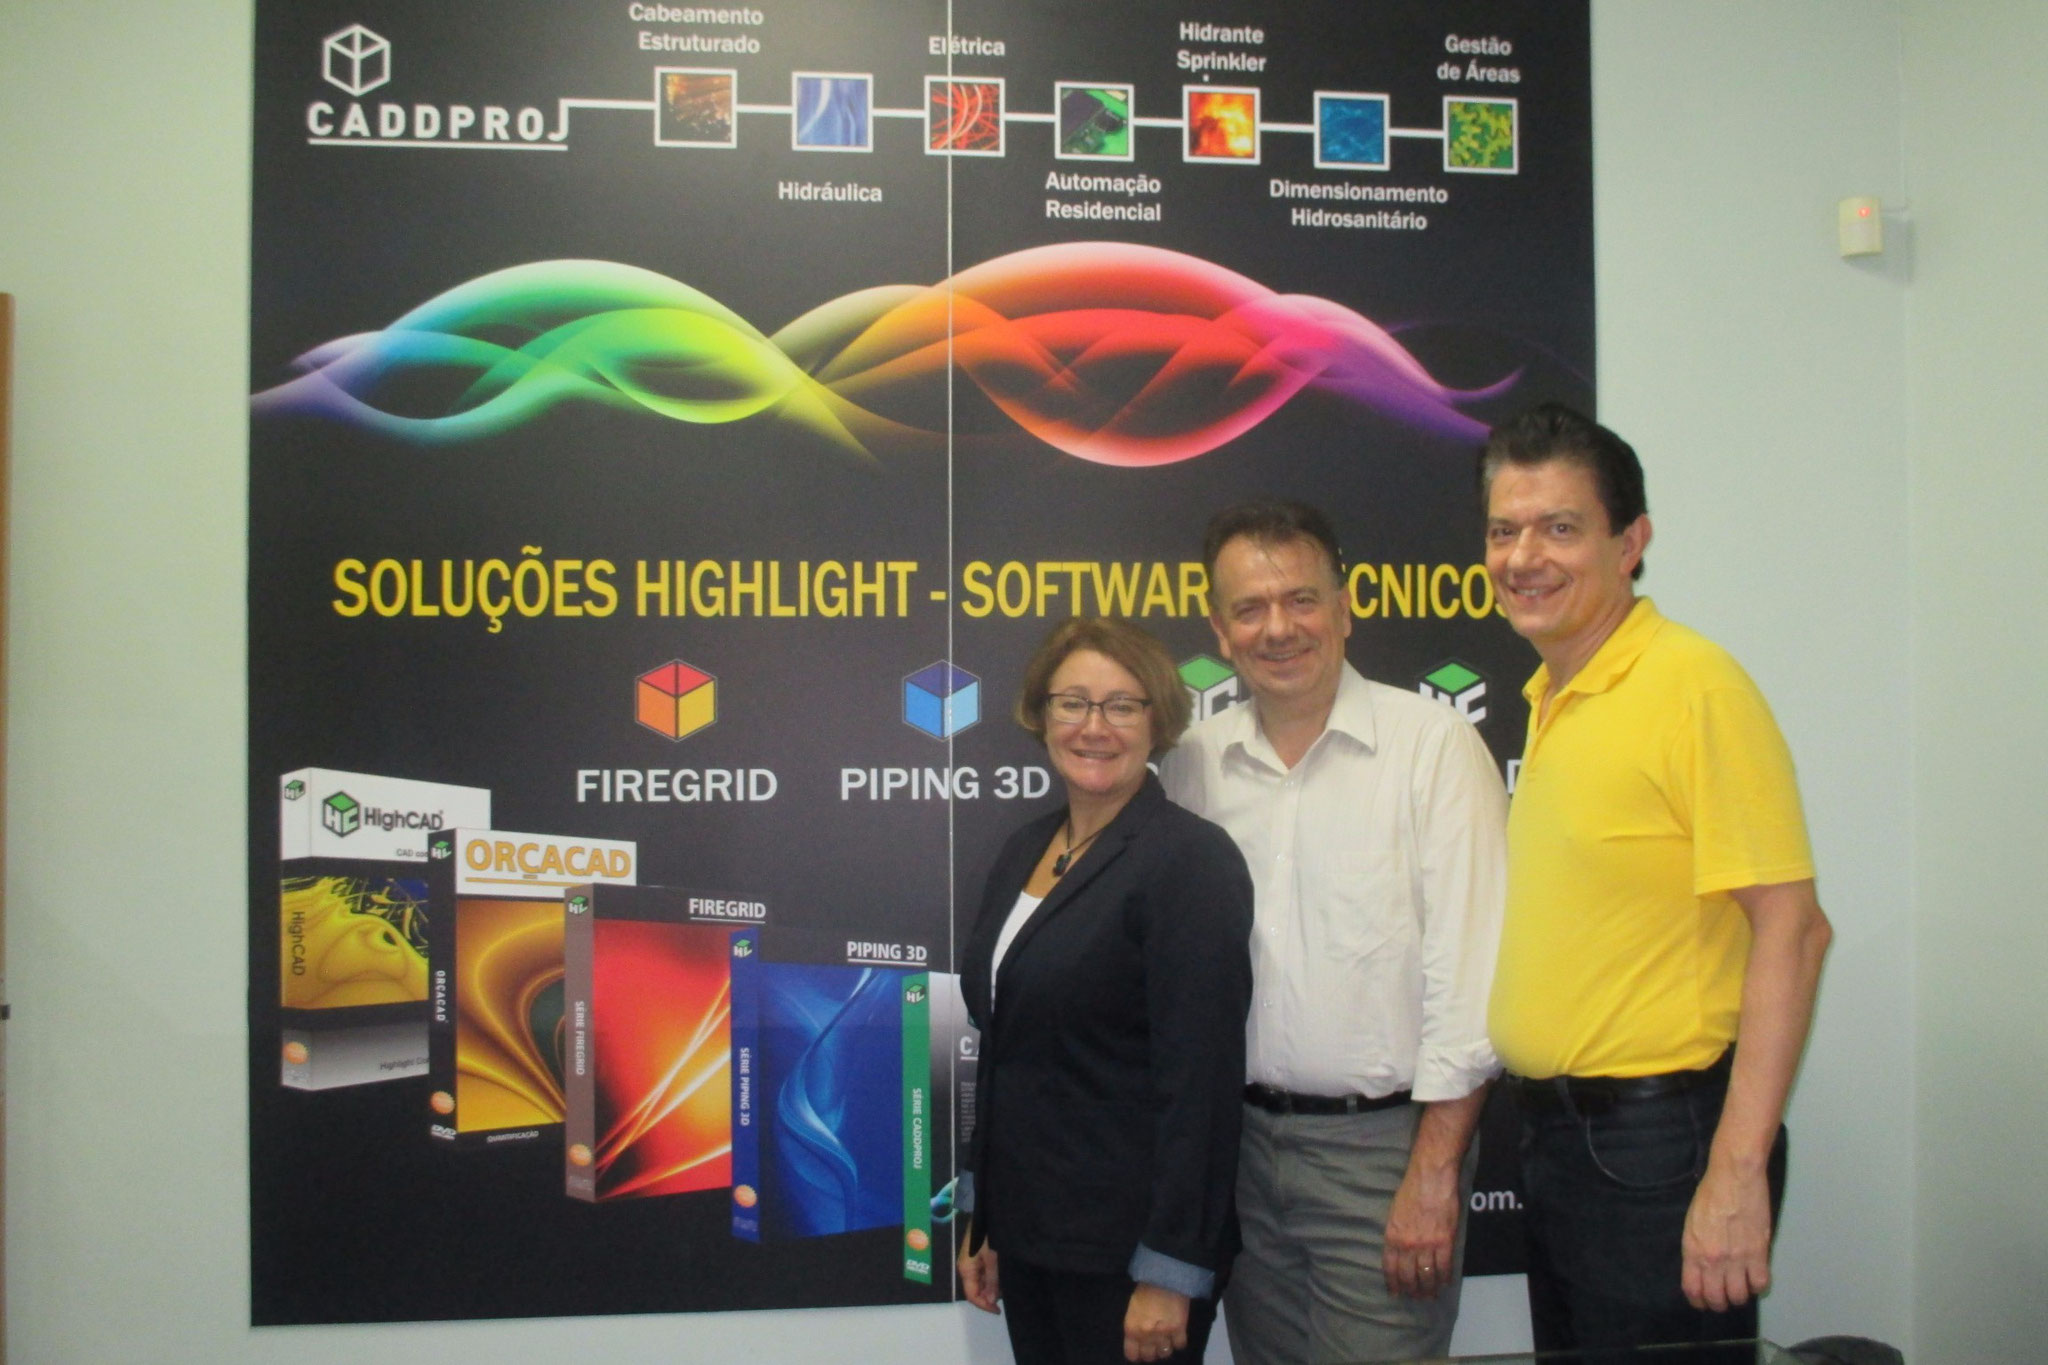 Visiting Highlight Computacao Grafica in 2015, Sao Paulo, Brazil.